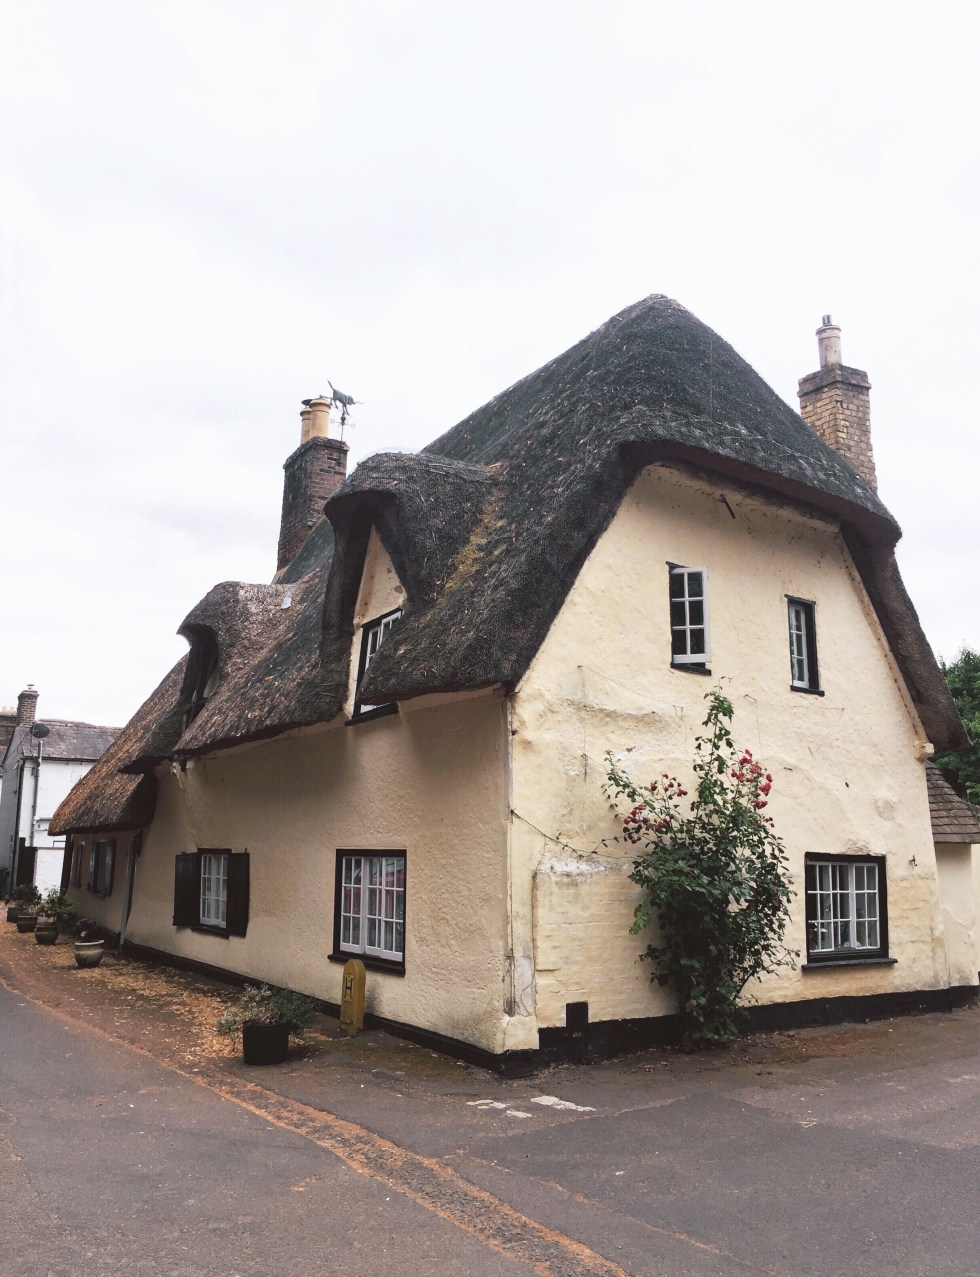 A classical yellow thatched house nestled in Cambridgeshire